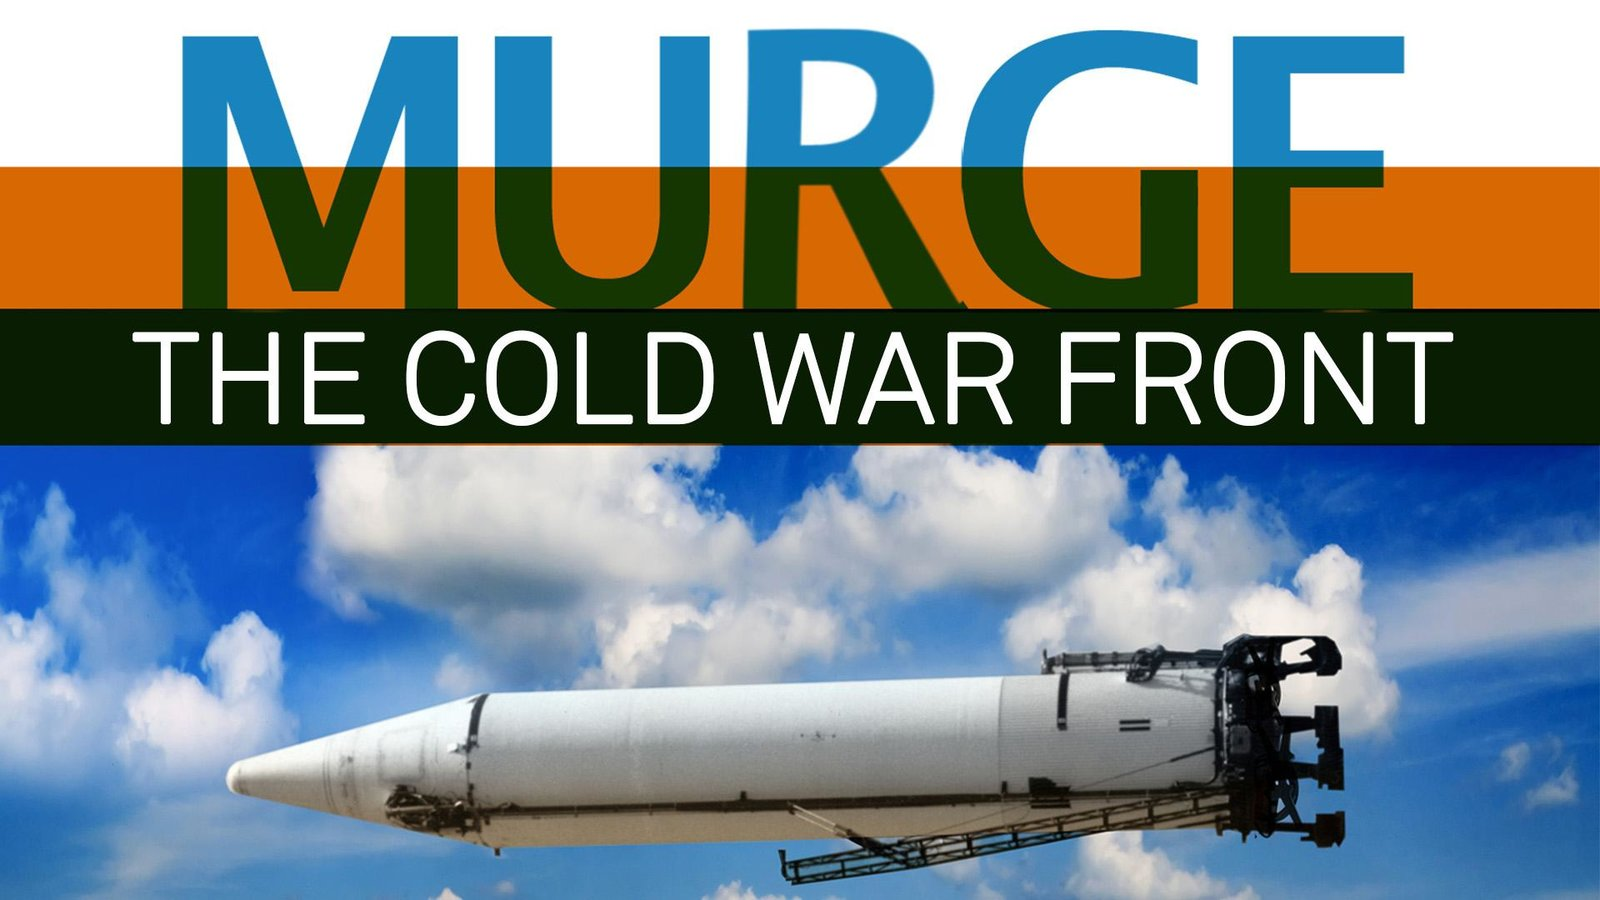 Murge - The Unknown Story of the Cold War Front